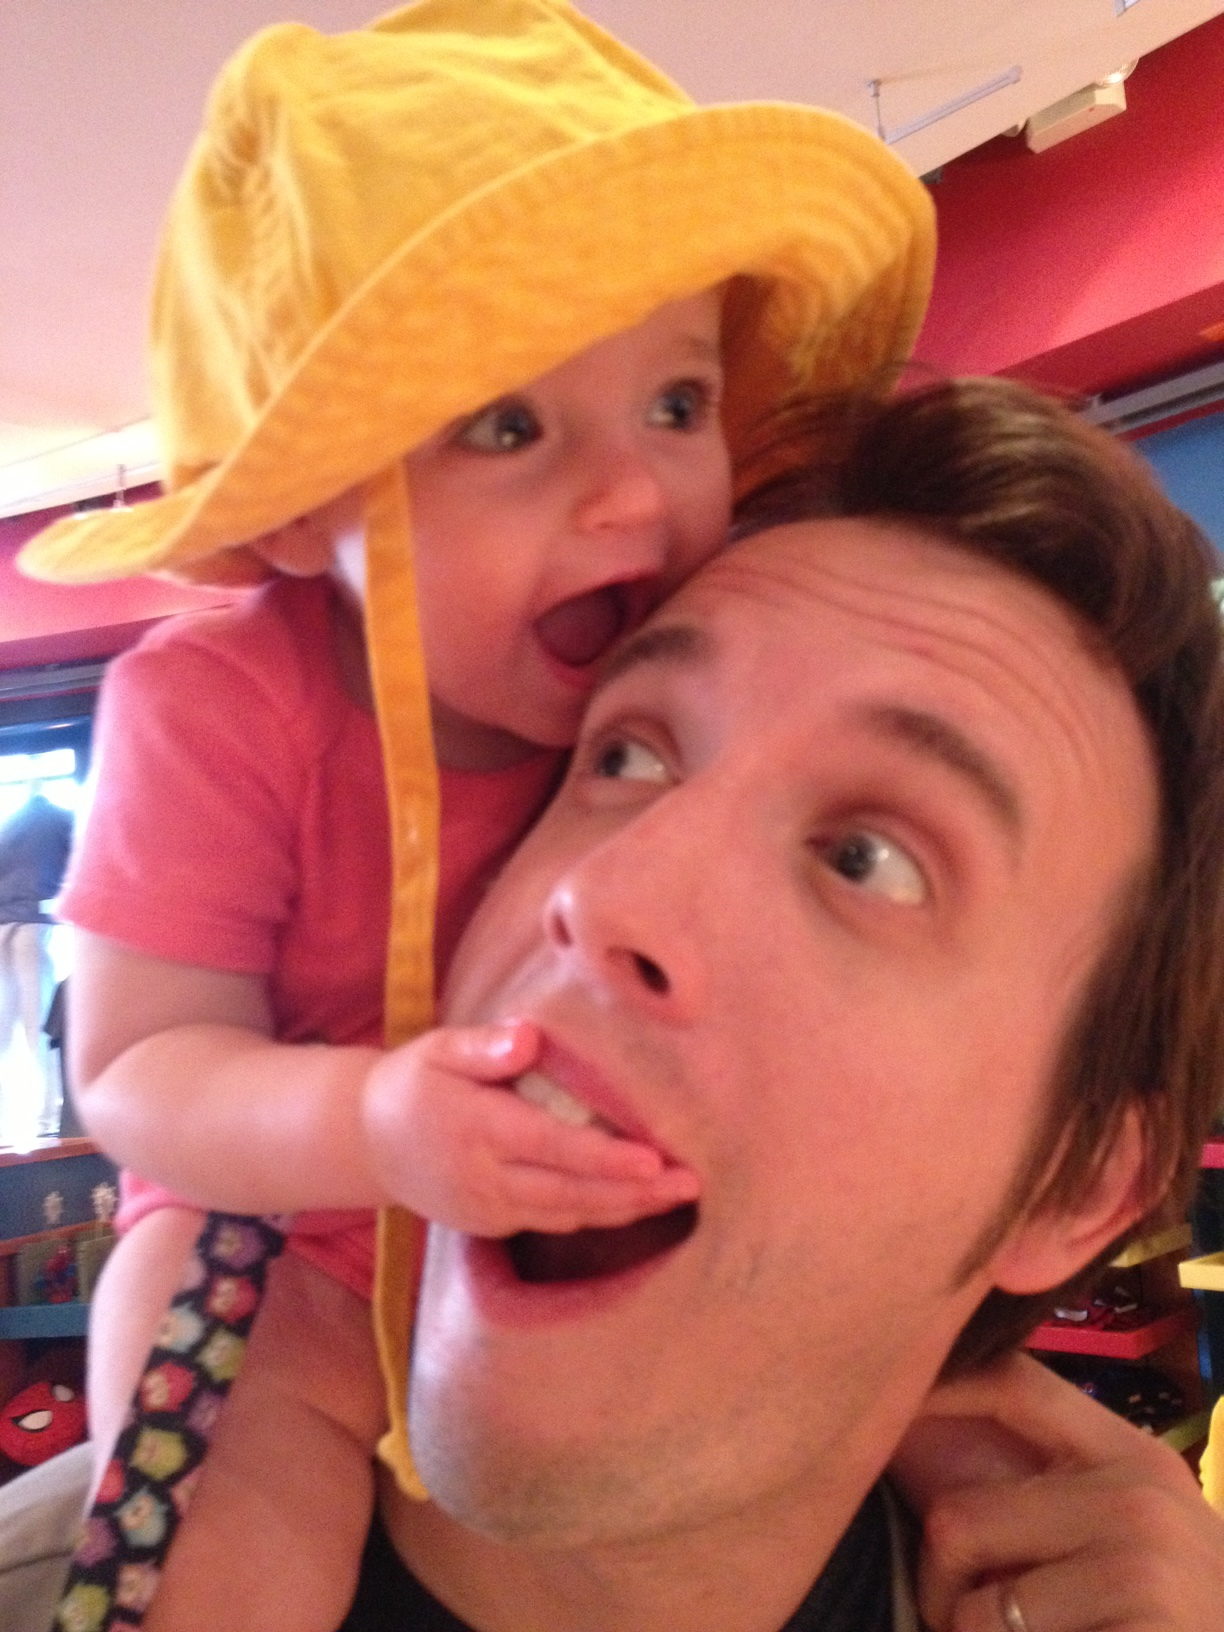 No, Daddy, don't eat me!